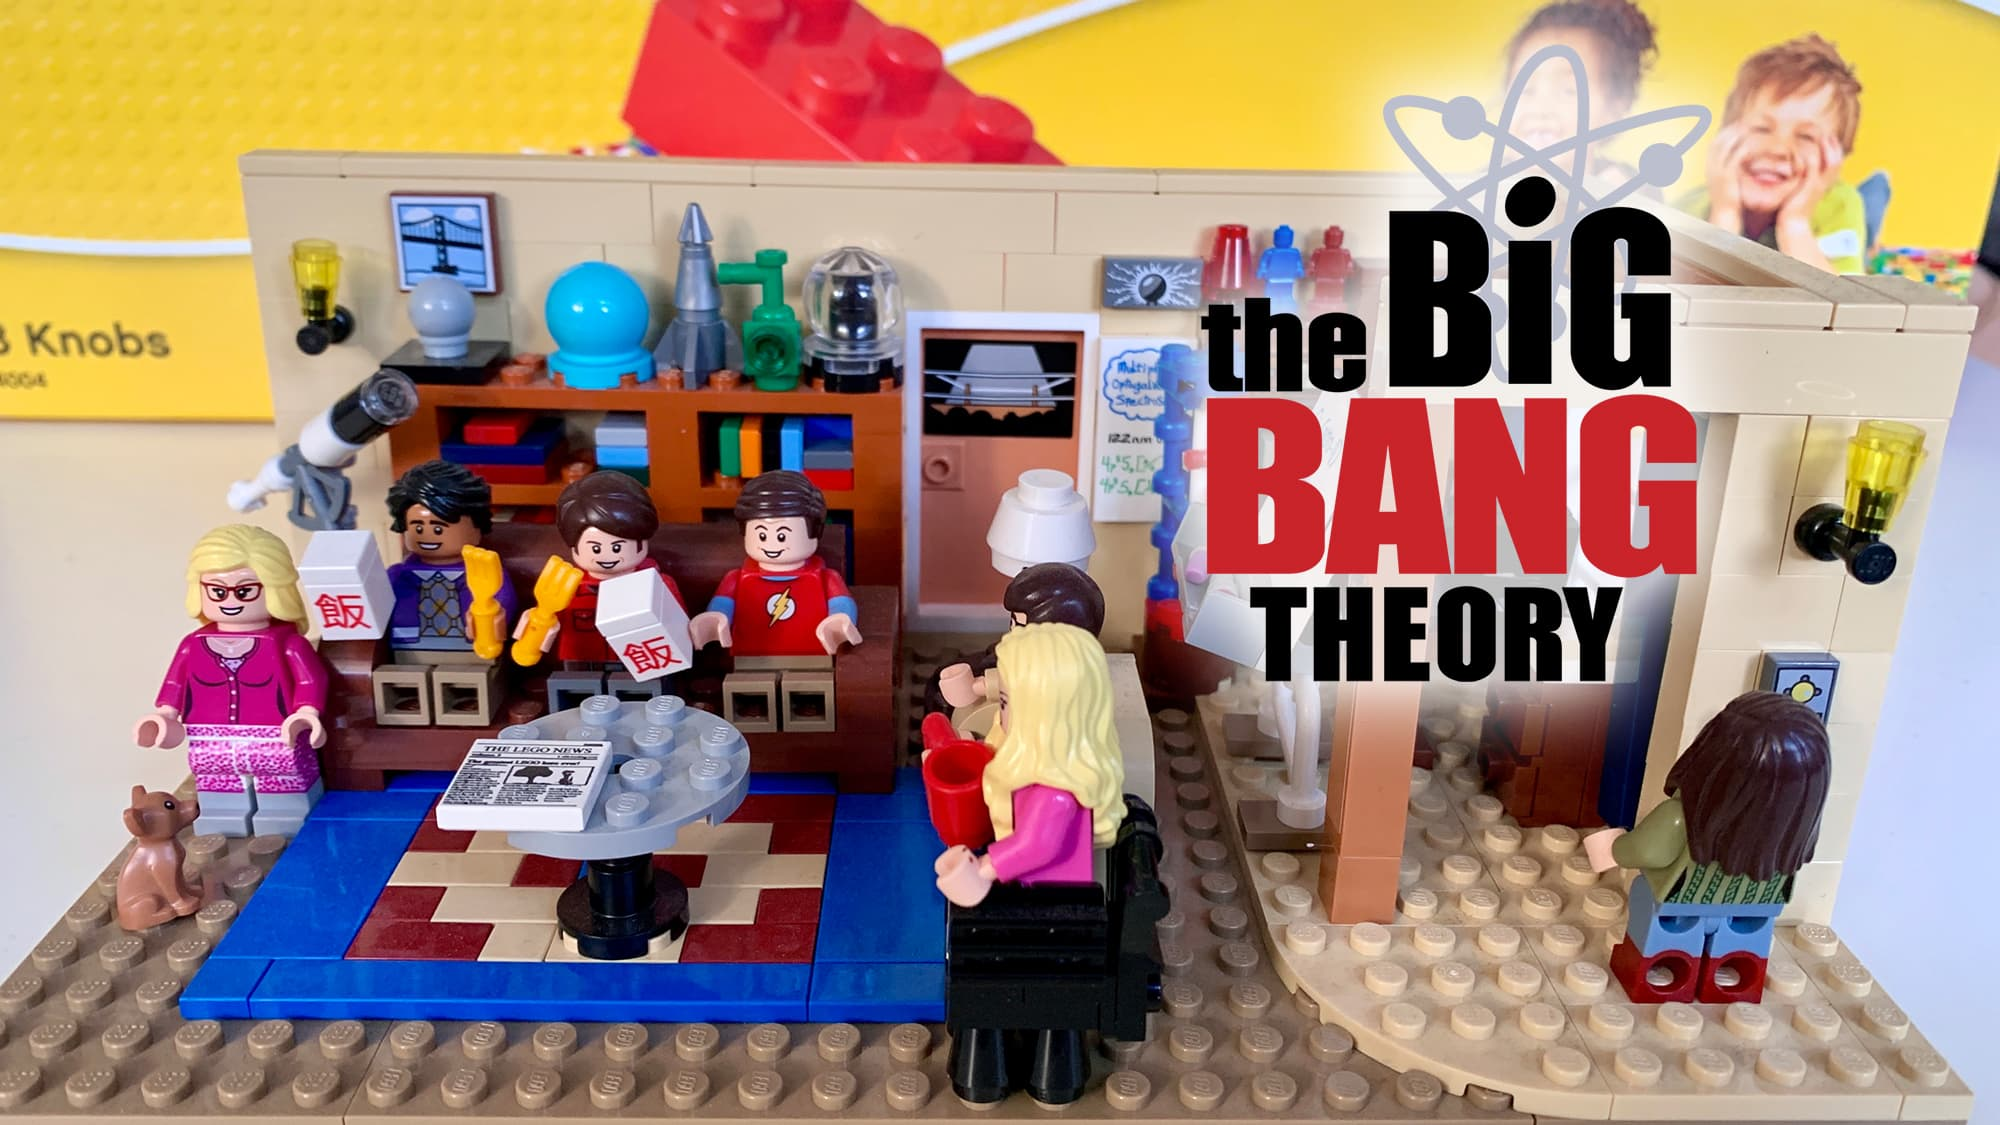 The Big Bang Theory - Lego-Set